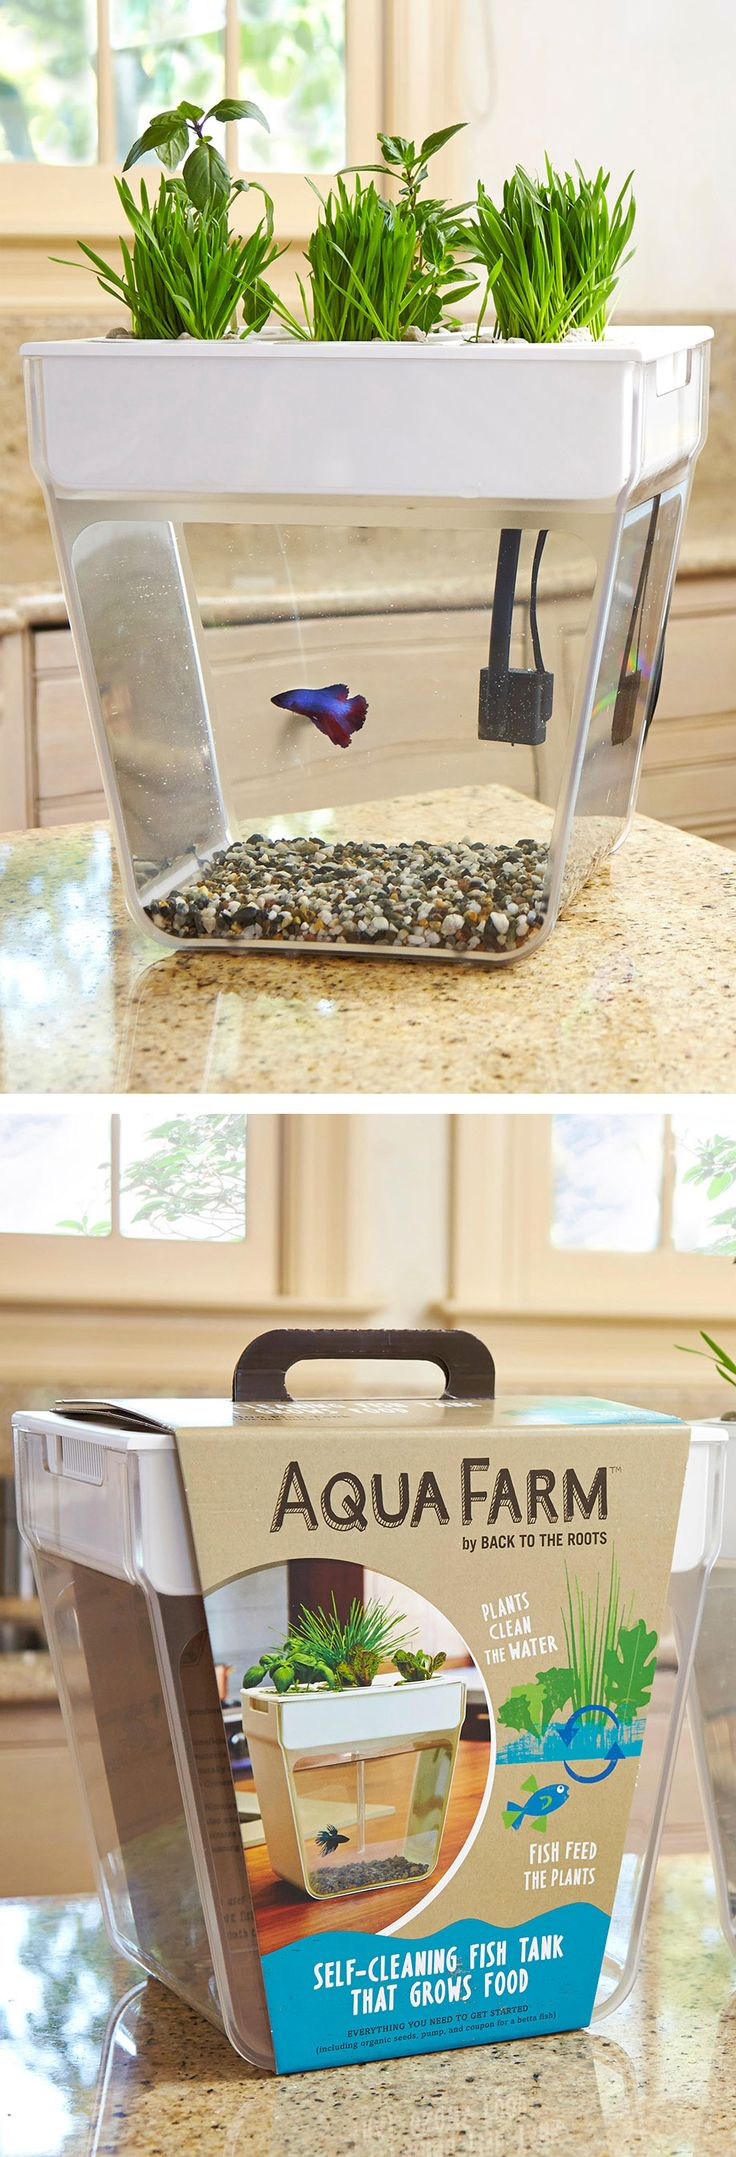 Aquafarm // a self-cleaning fish tank that grows food! #product_design